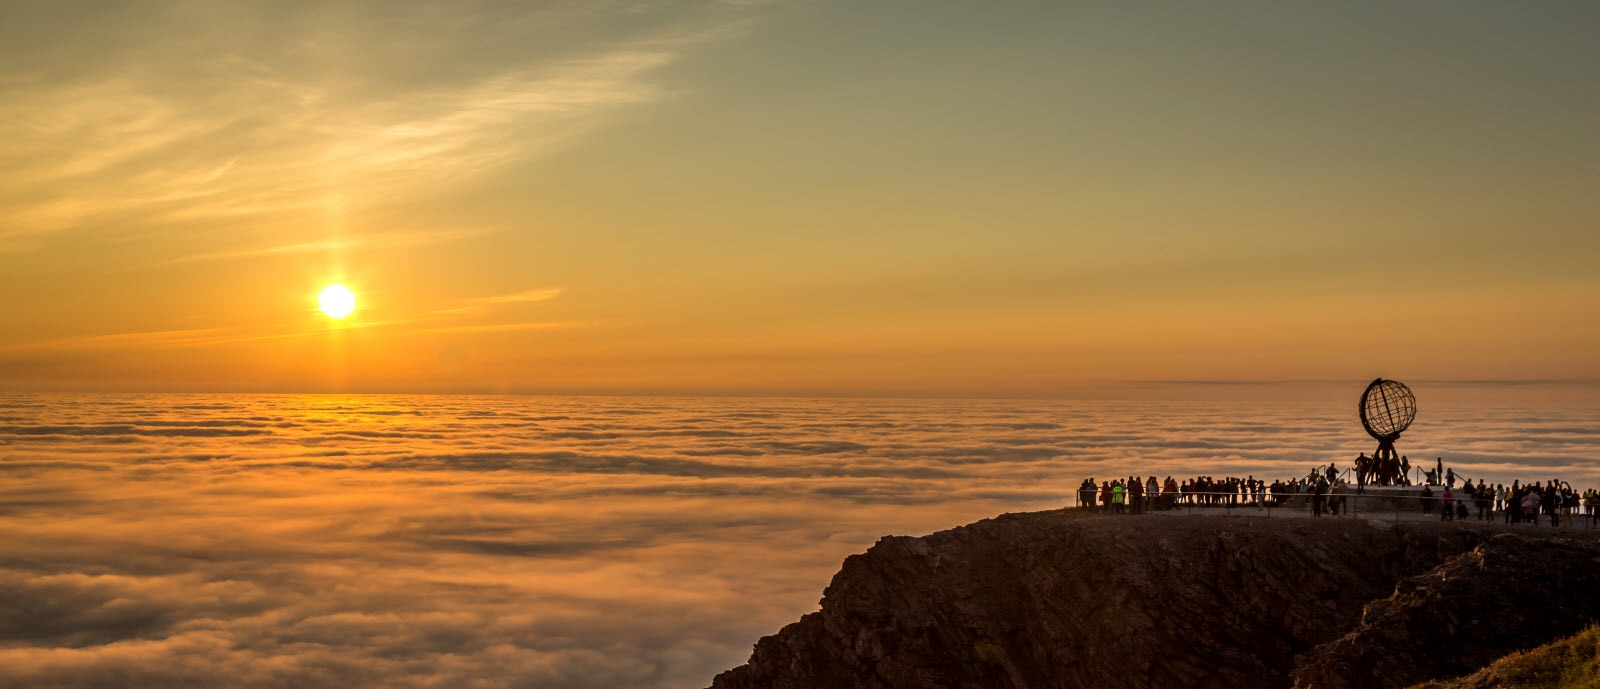 shutterstock_221661544-ny_Midnight_Sun_North_Cape.jpg